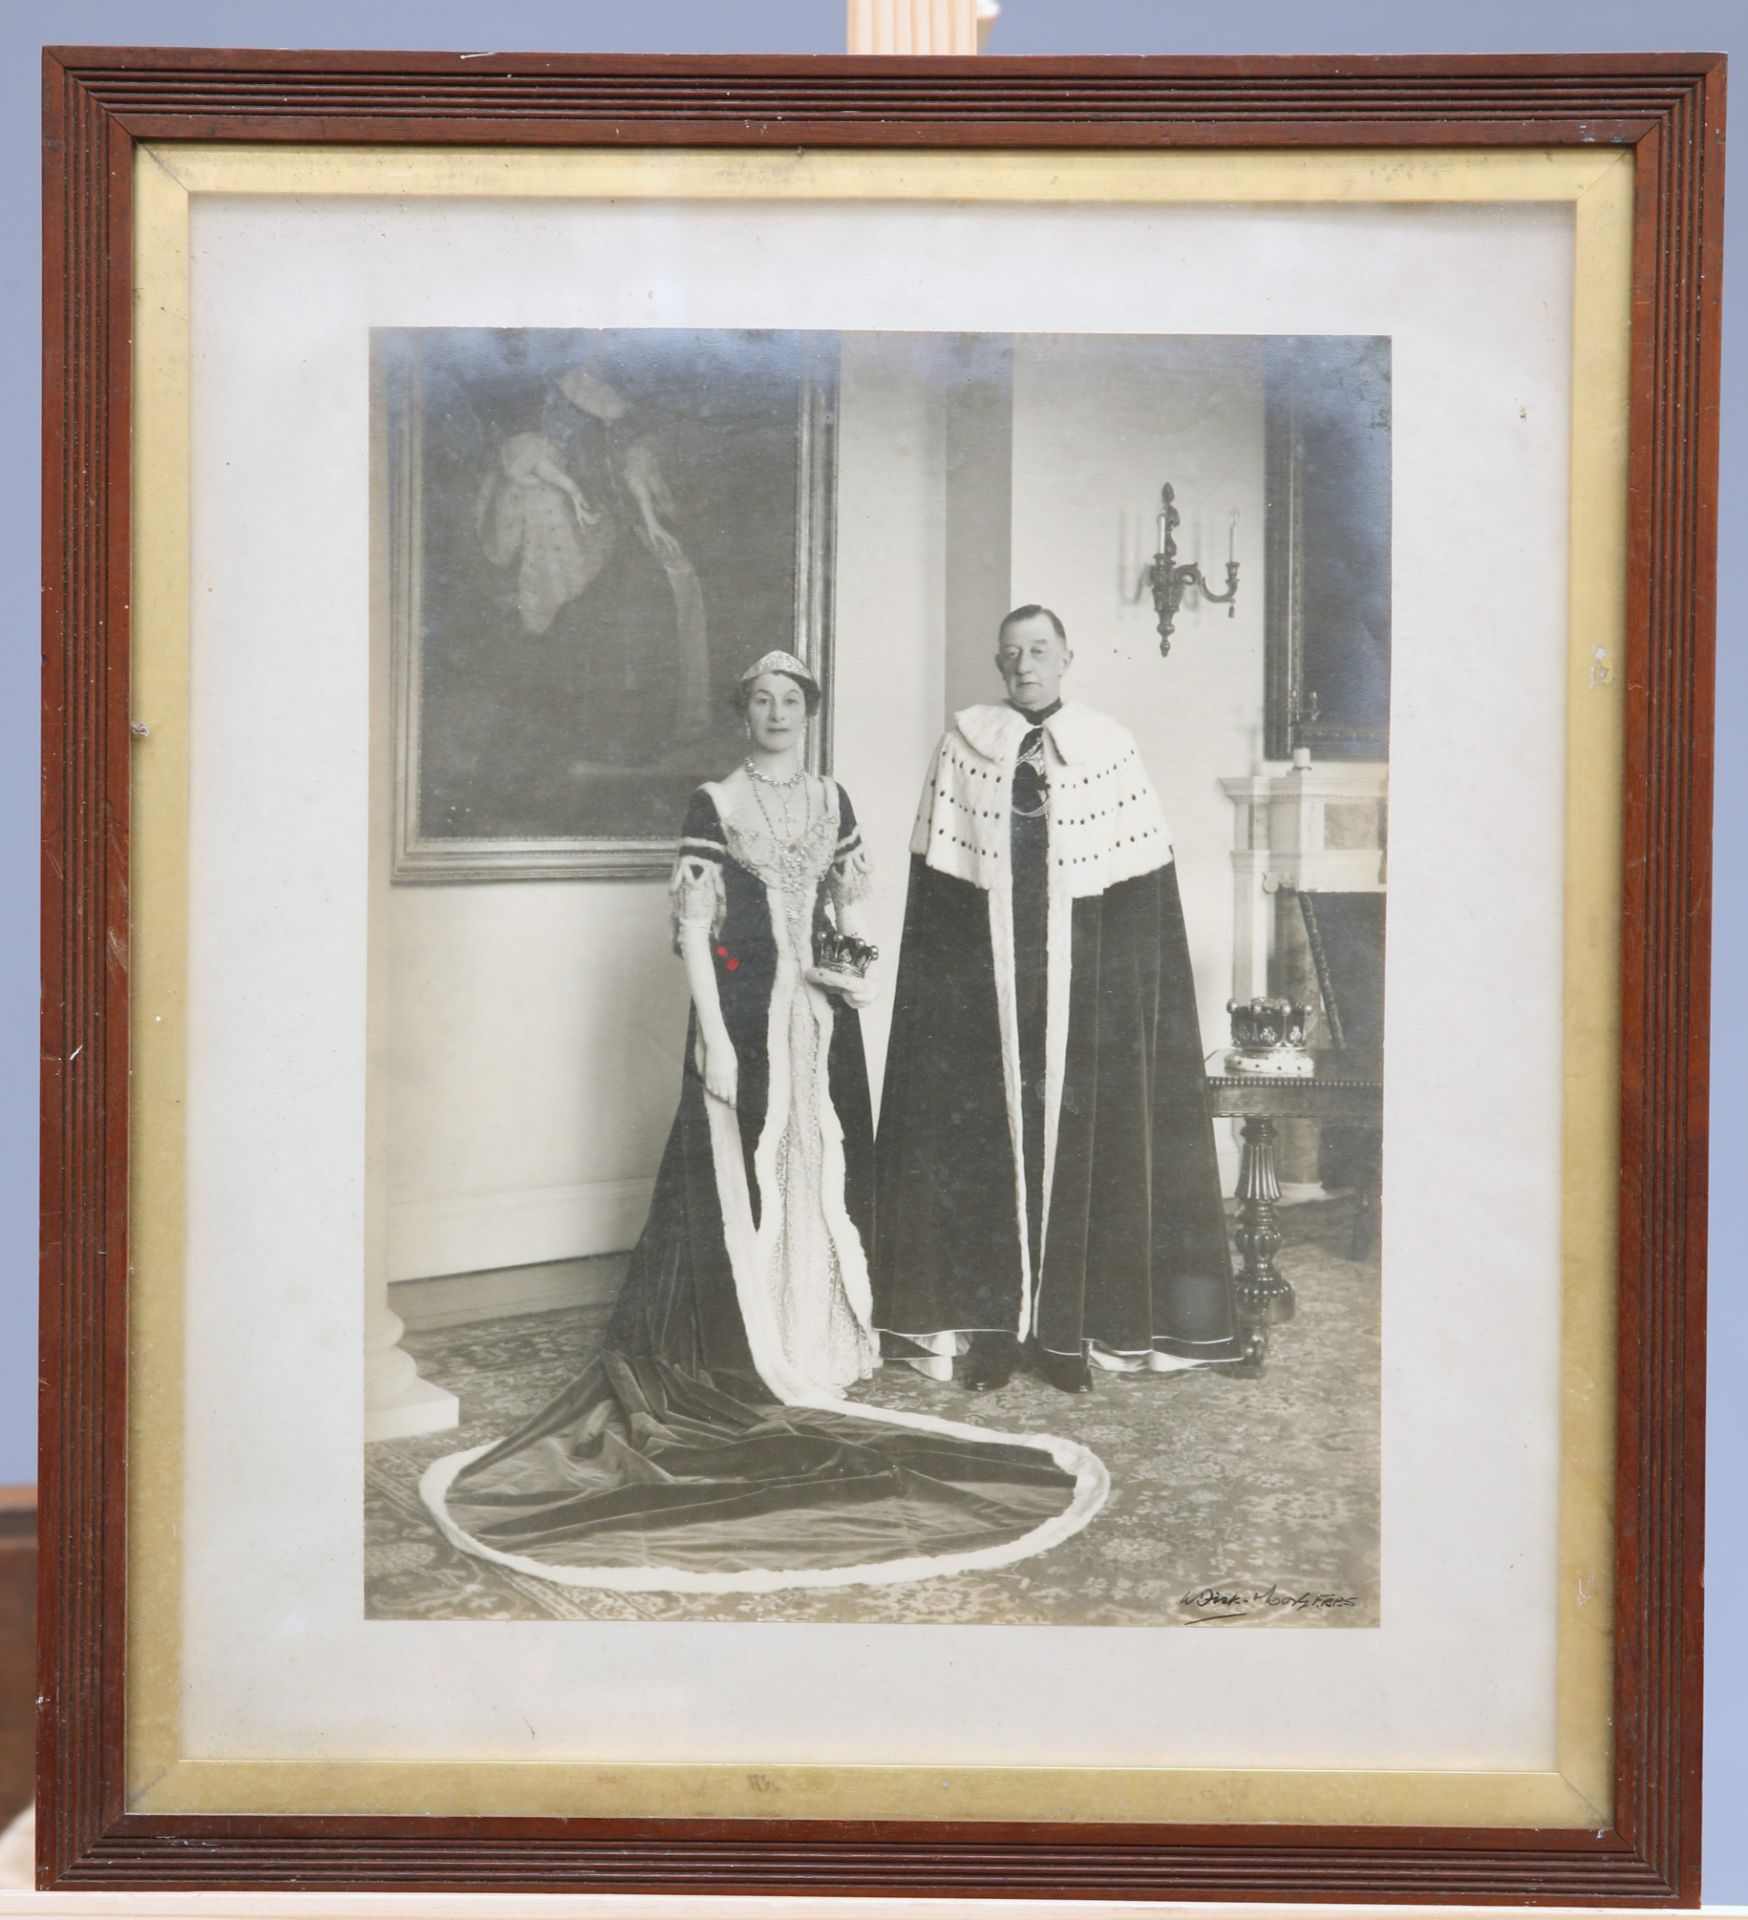 ~ THE CORONATION ROBES OF THE COUNTESS OF GUILFORD by Ede, Son & Ravenscroft, crimson velvet trimmed - Bild 5 aus 5